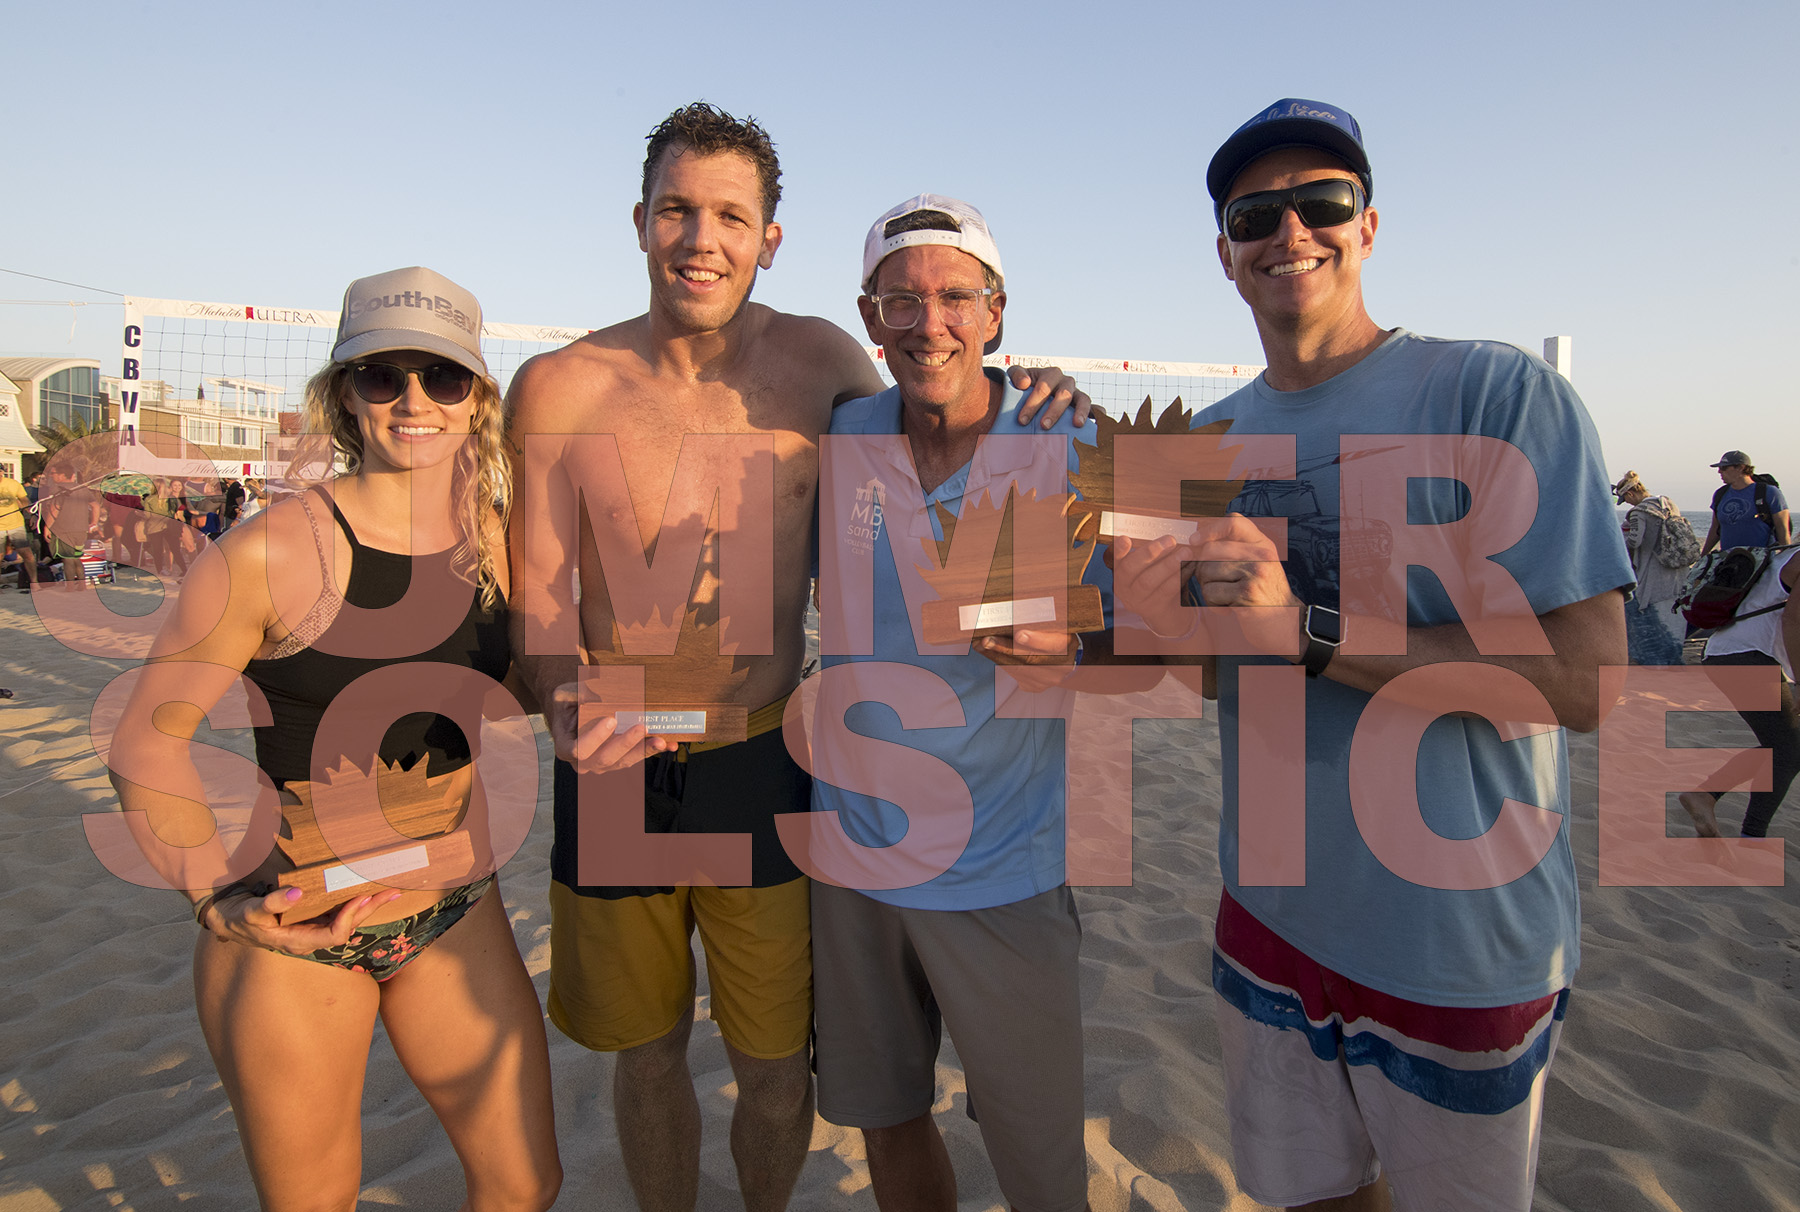 Summer Solstice Volleyball Tradition Continues in Hermosa Beach (VIDEO)